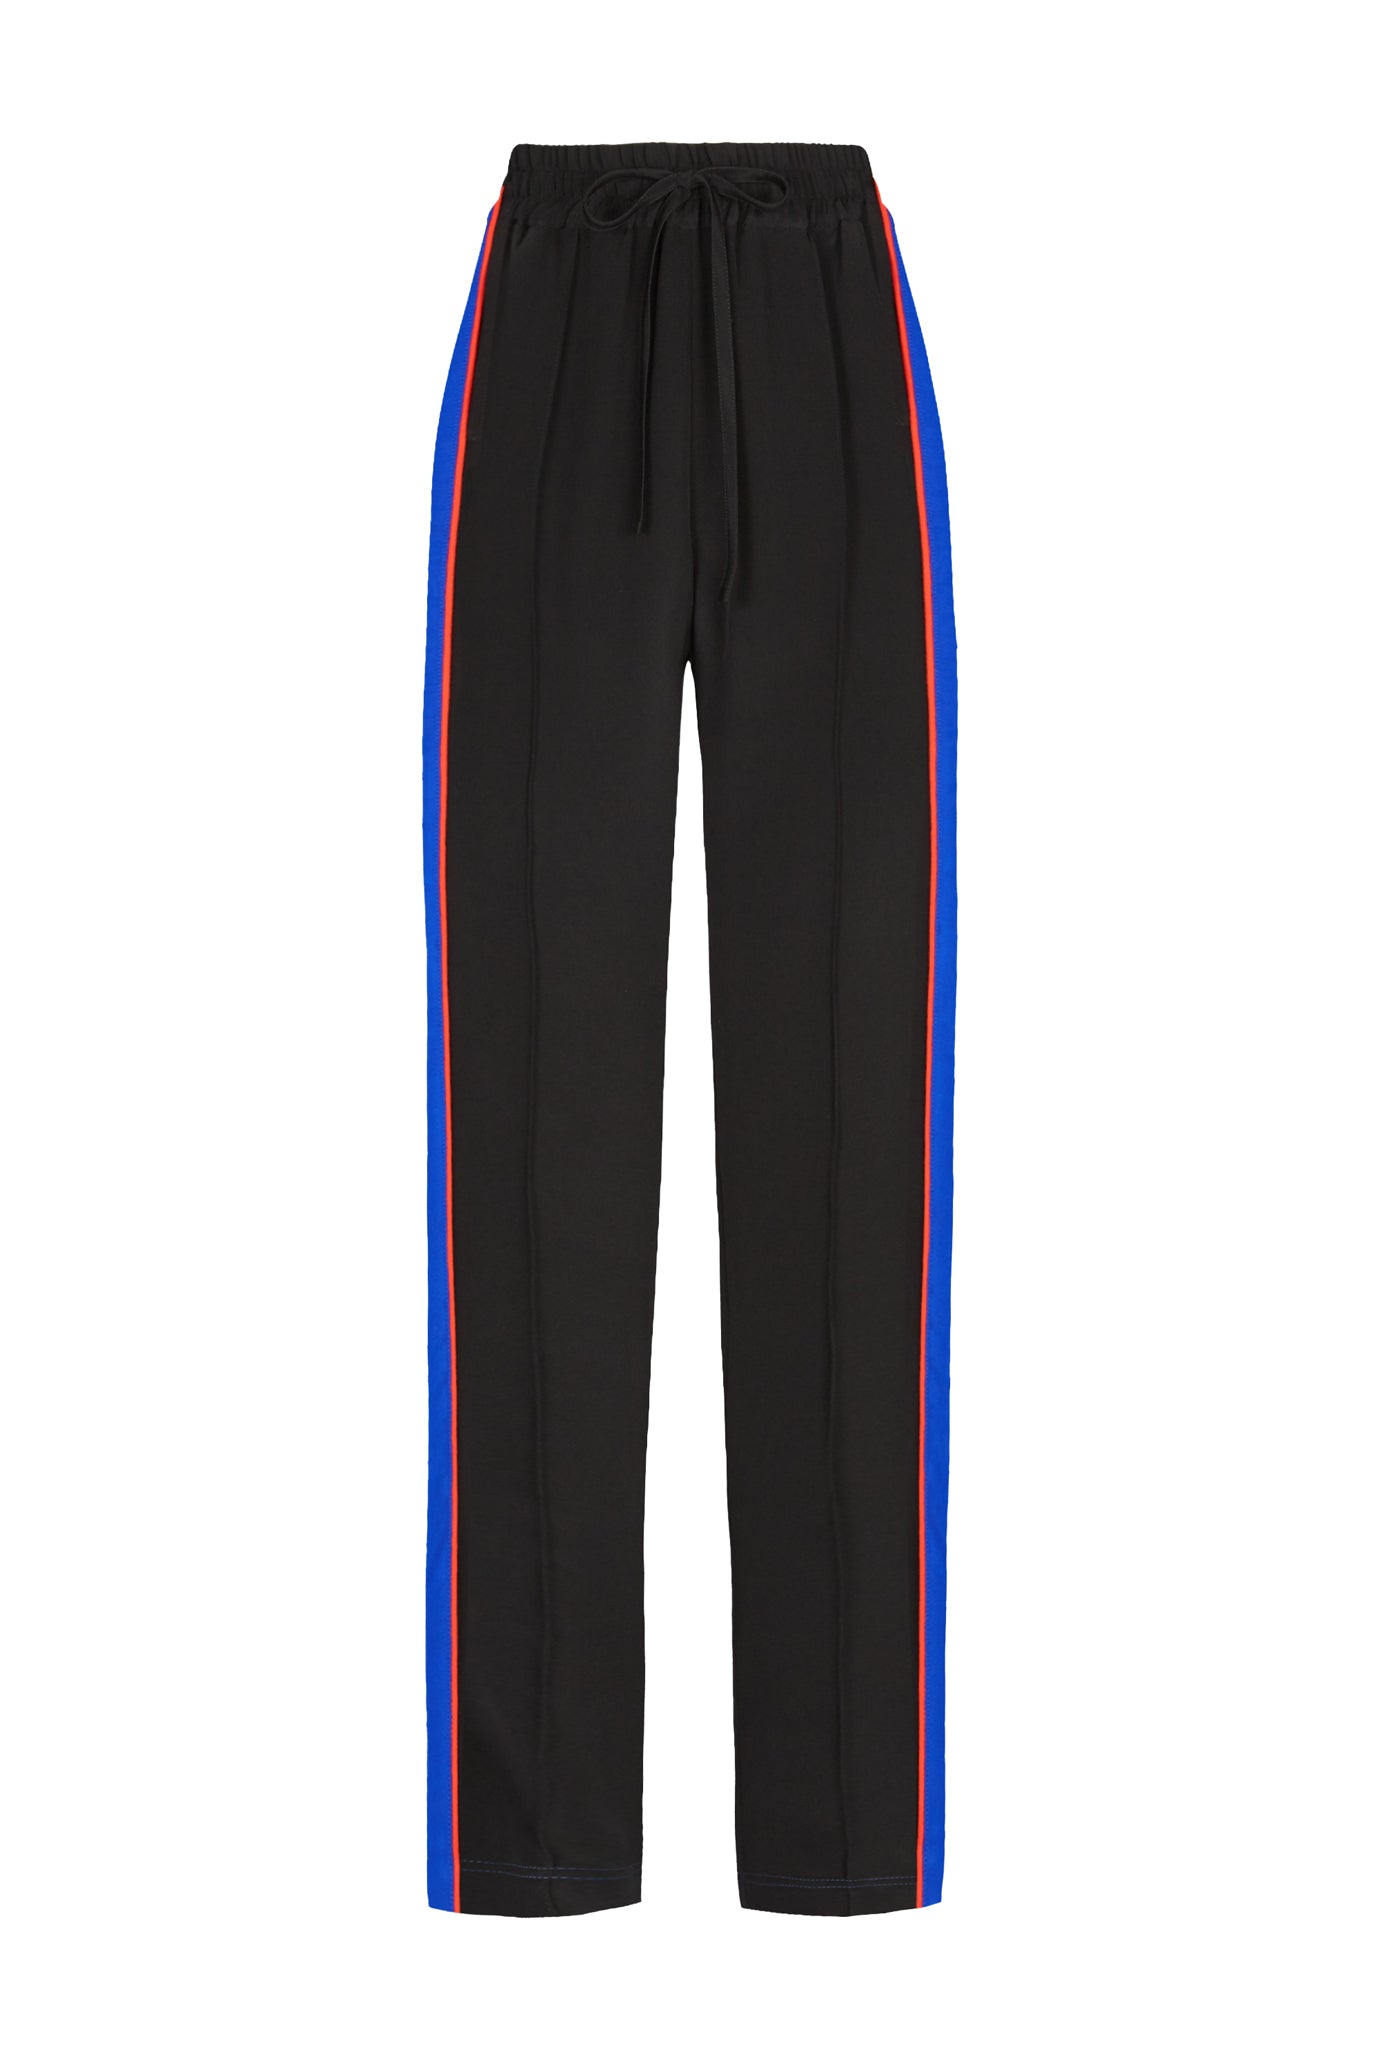 Skinny jogger silk black blue red Serena Bute